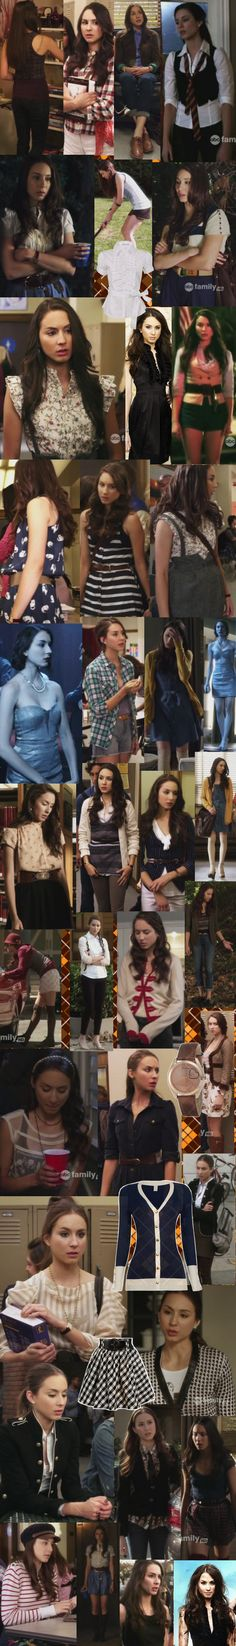 Pudim Engorda: Especial: Pretty Little Liars - Spencer Hastings